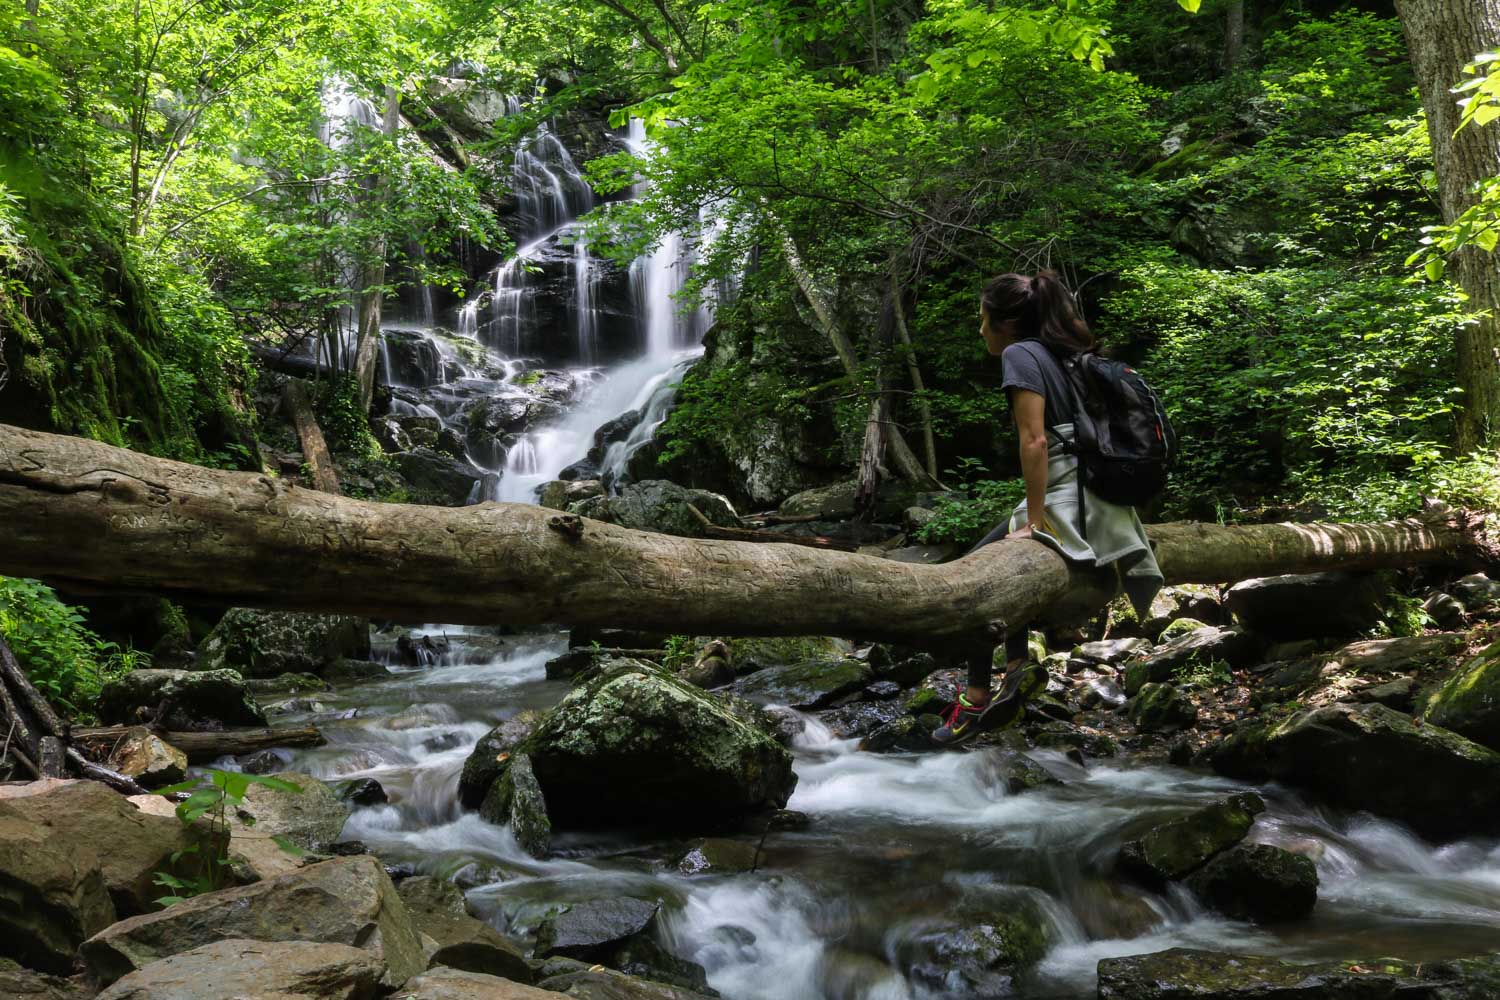 female hiker rests on fallen tree overlooking a running, rocky waterfall